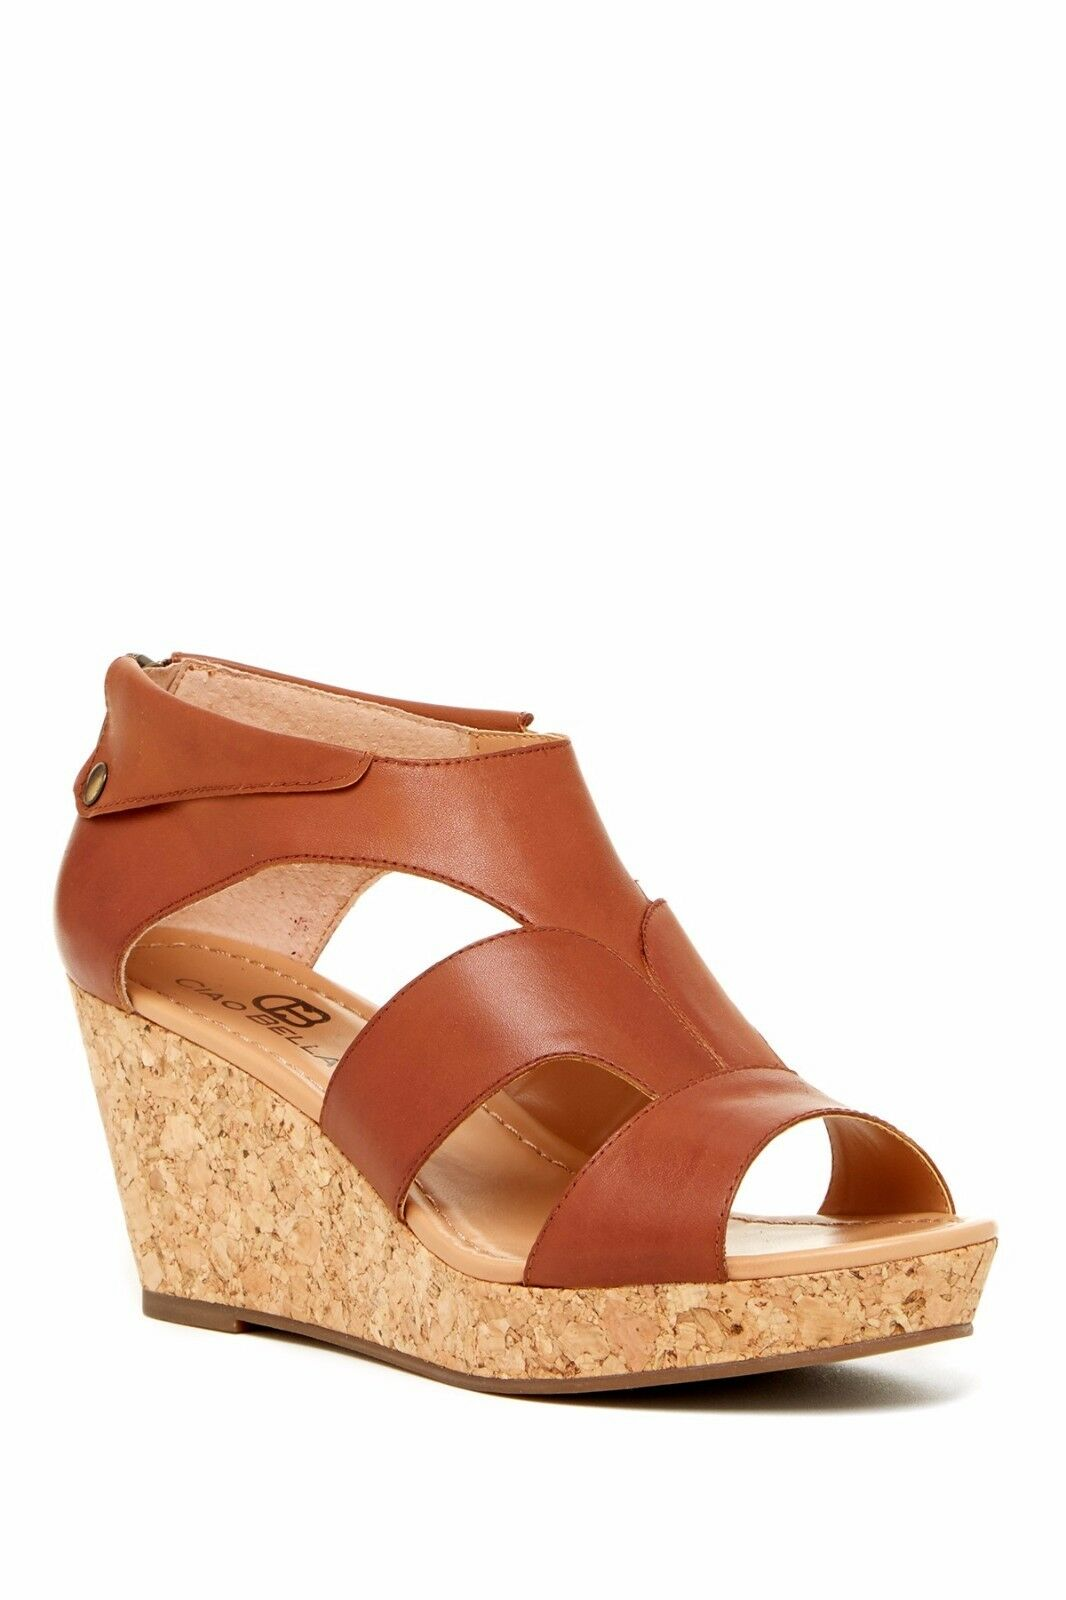 New Ciao Bella Lucy Cork Wedge Leather Sandals women size 8